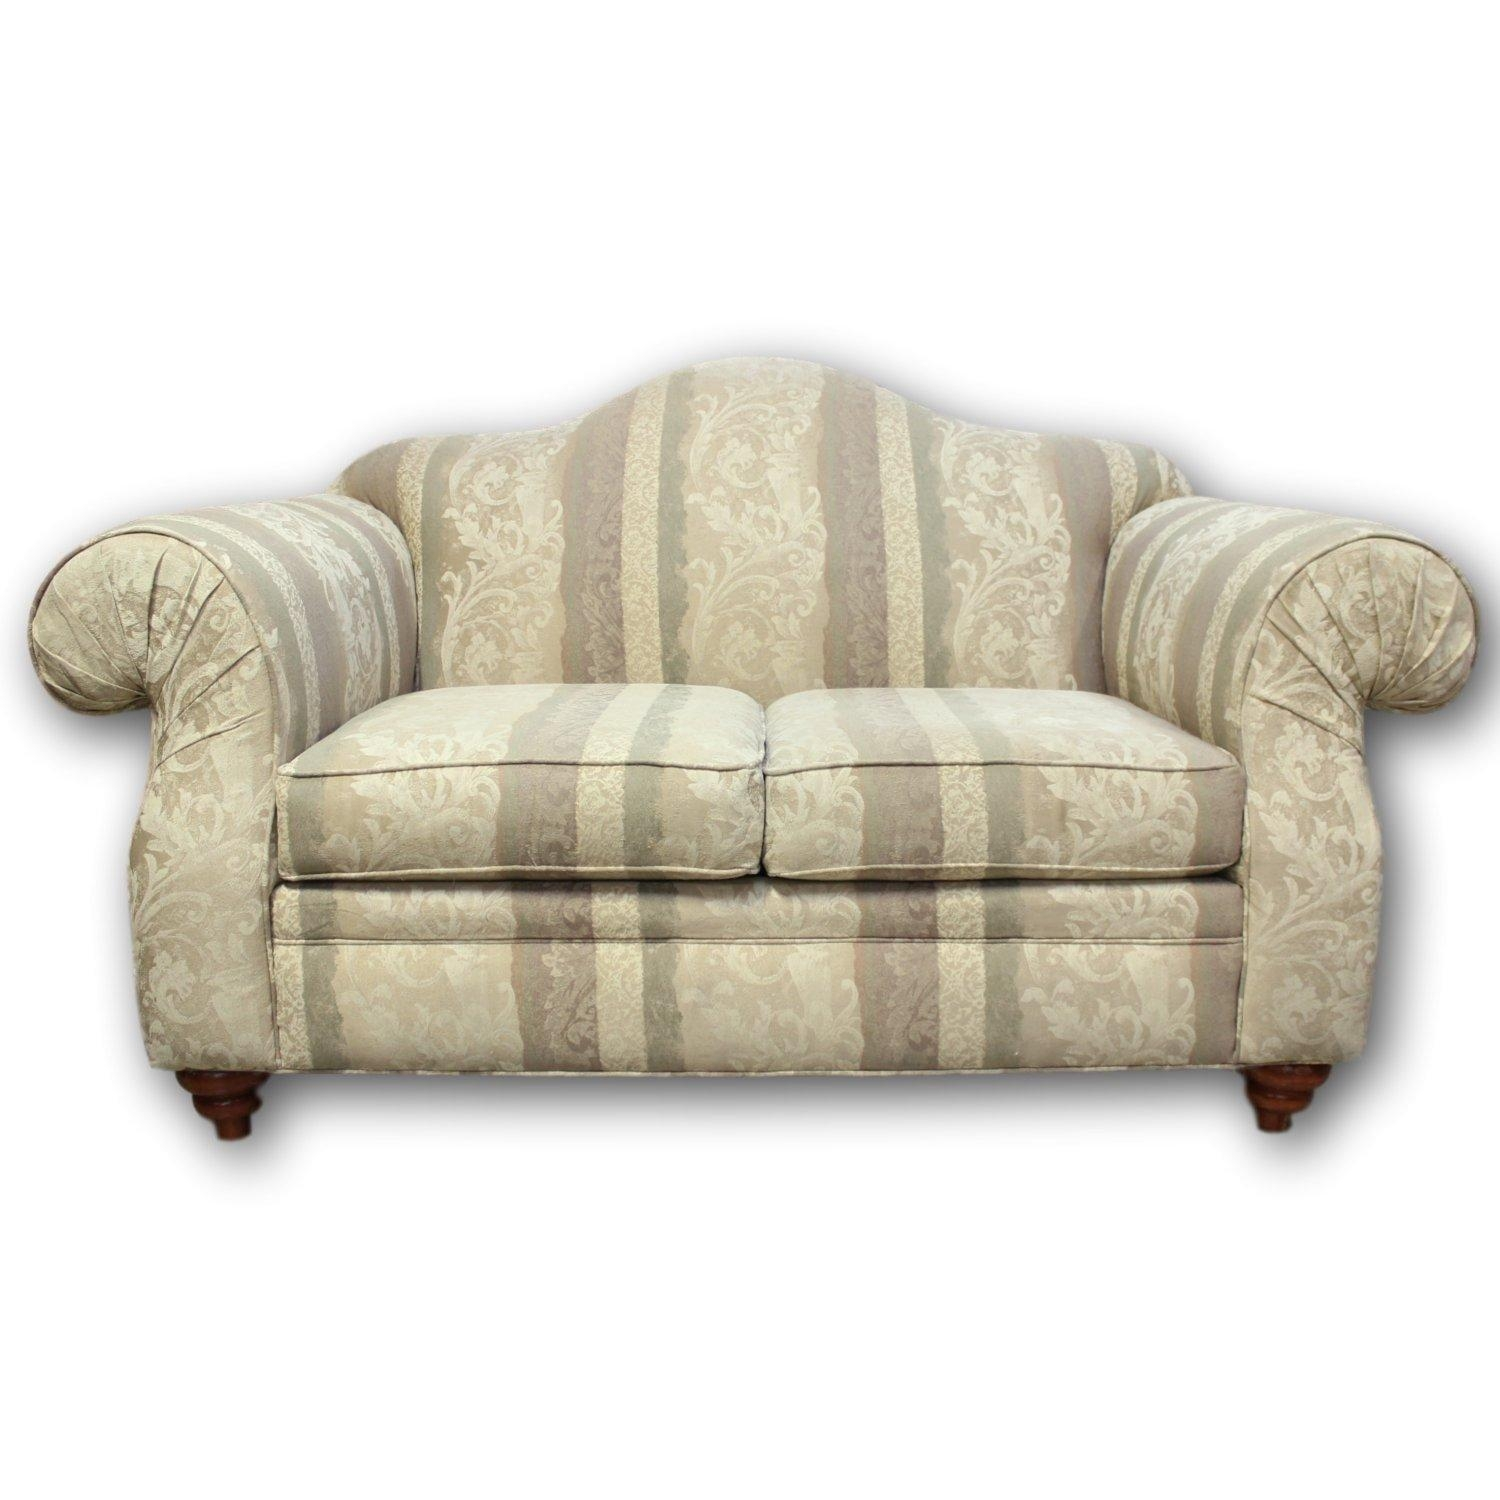 Alan White Camelback Loveseat | Upscale Consignment Throughout Alan White Couches (View 16 of 20)